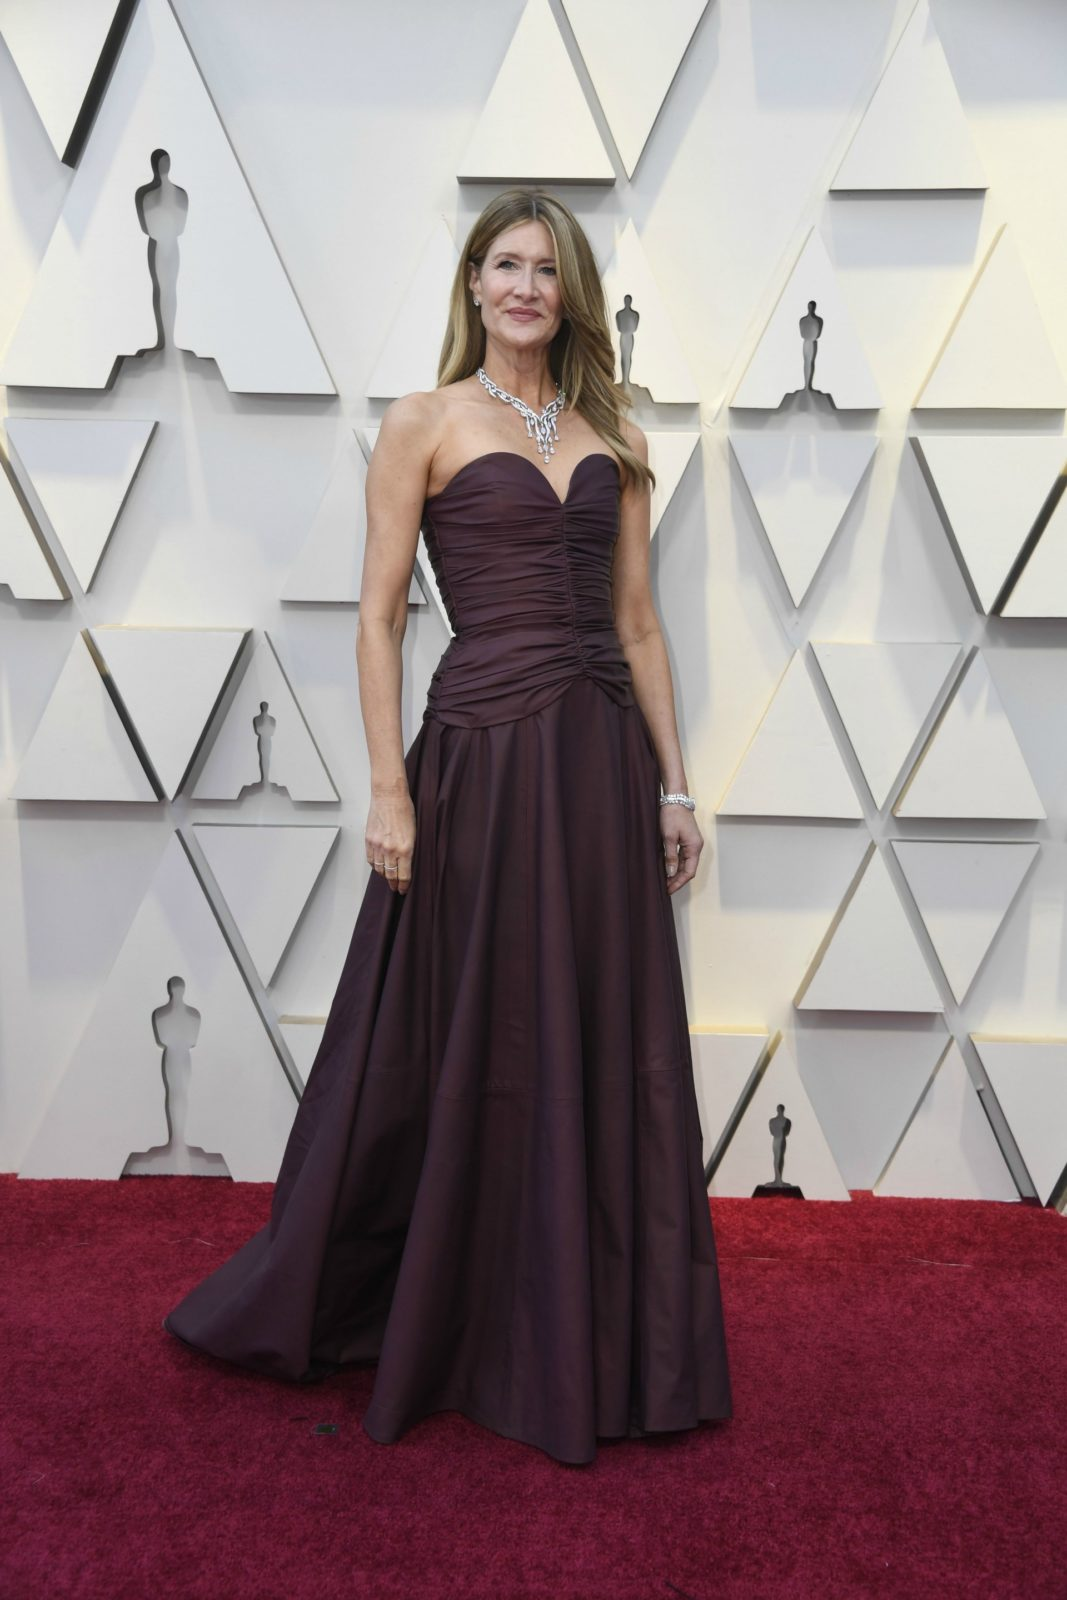 Laura Dern commanded attention in a burgundy strapless gown. Source: Getty